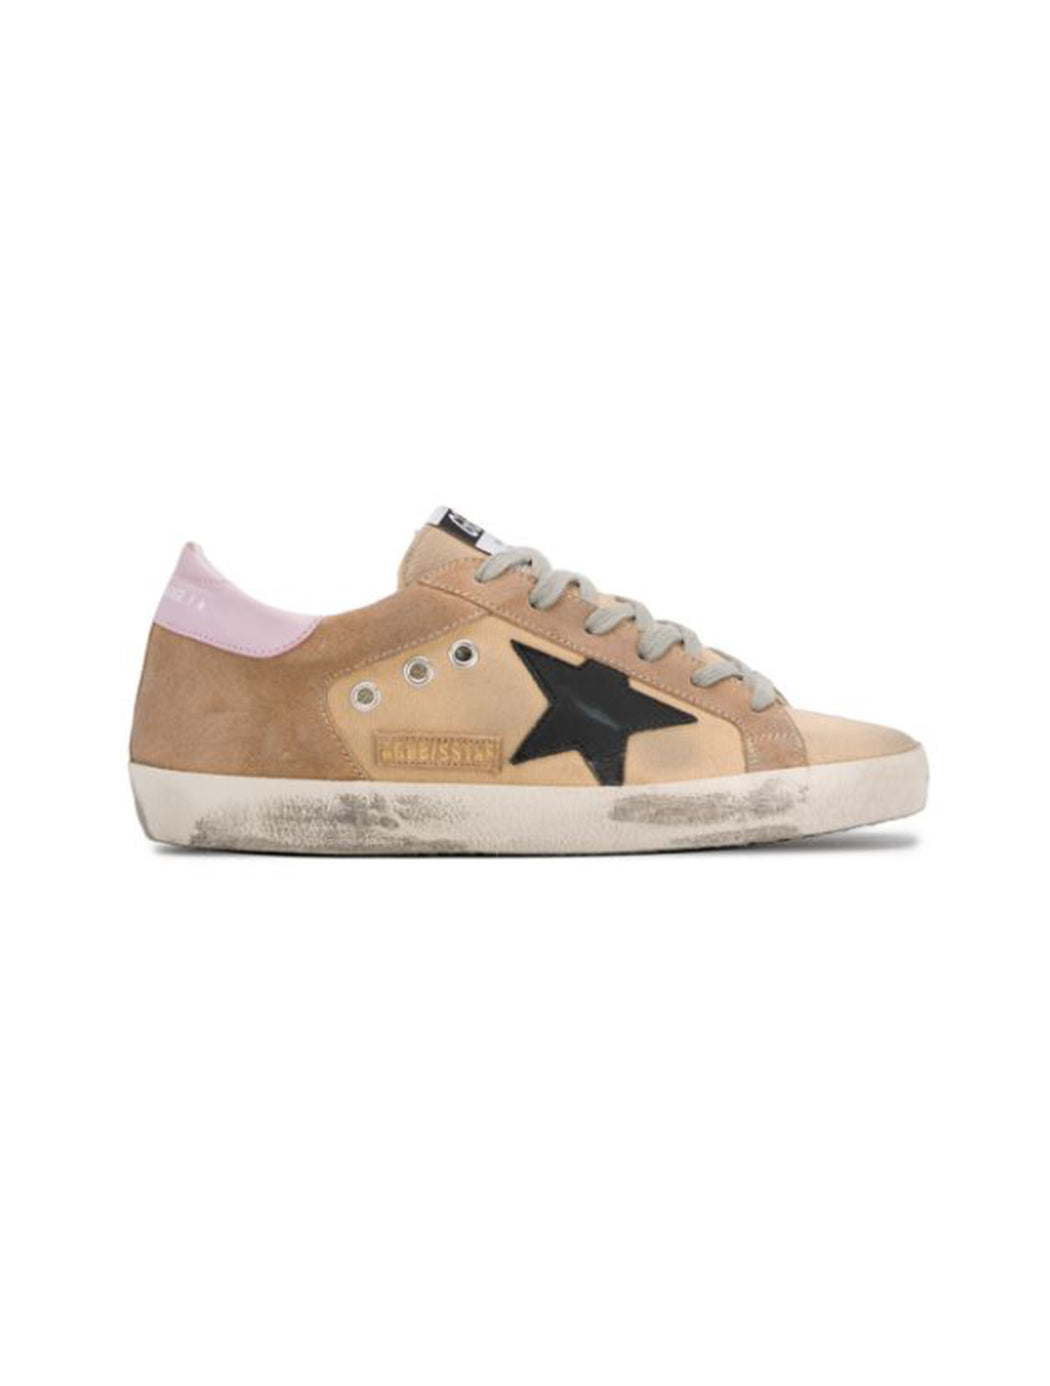 Black Star Suede Canvas Superstar